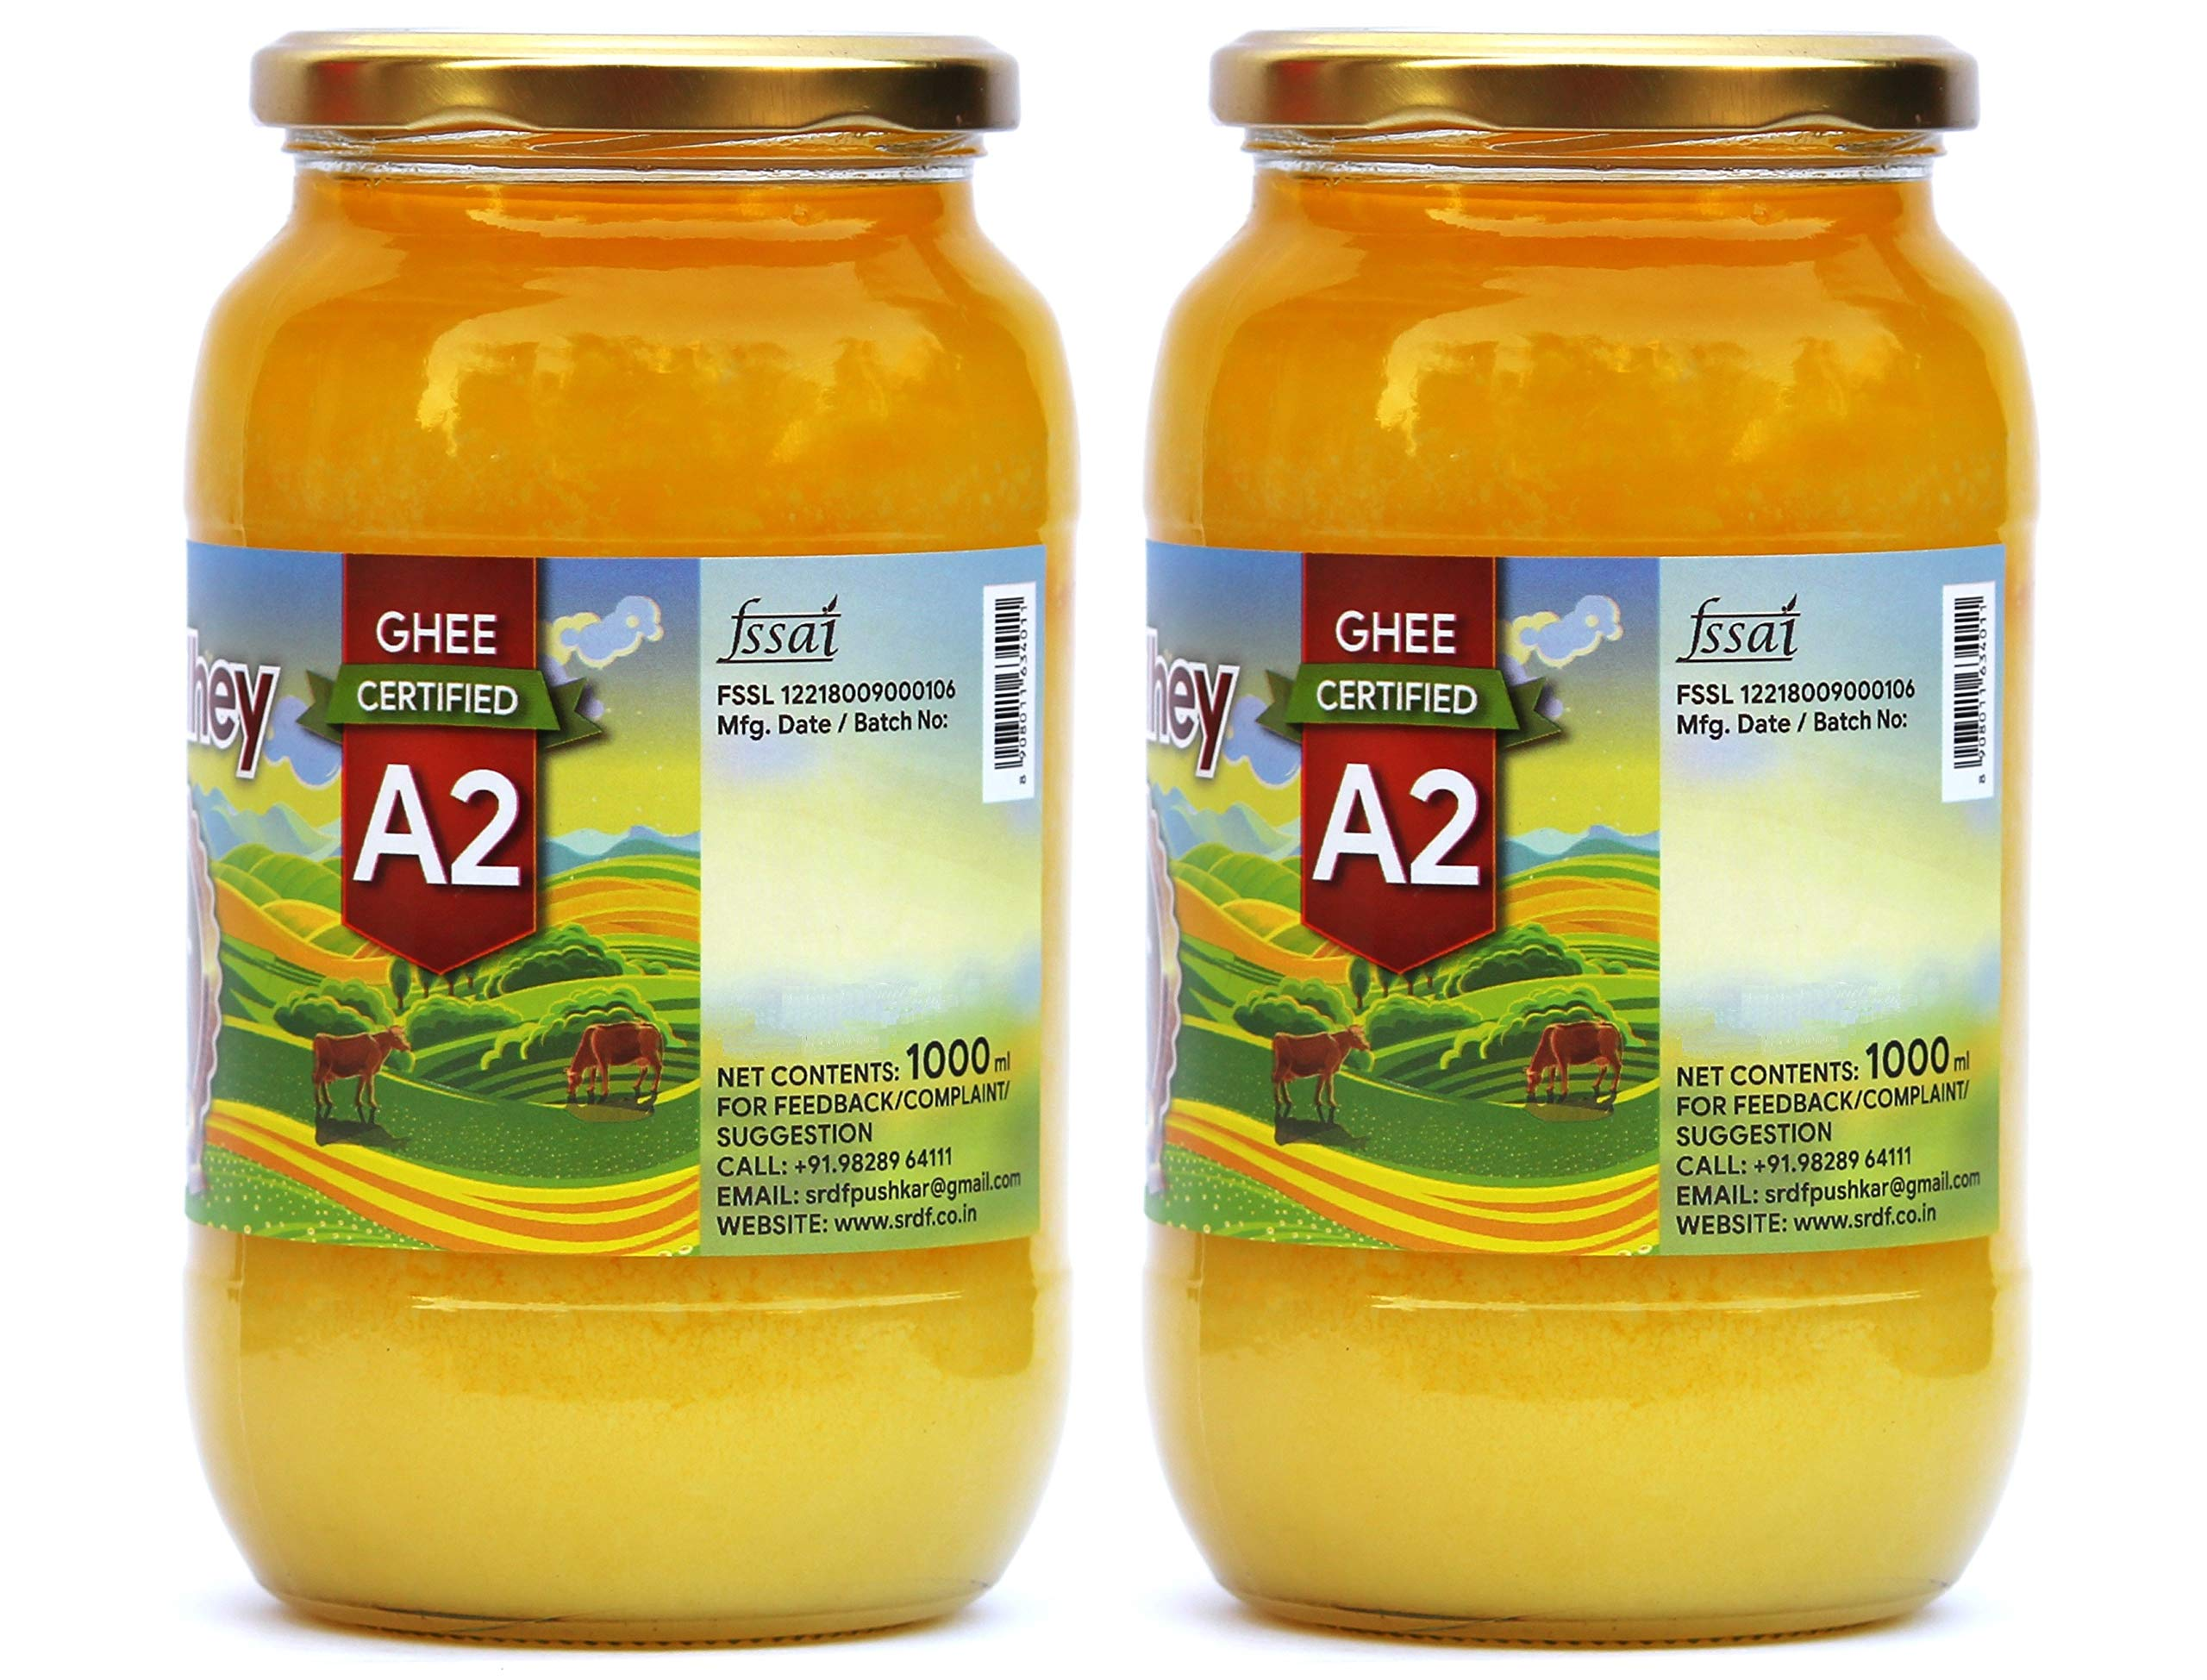 Shree Radhey Certified A2 Gir Cow Ghee - Gluten Free - (Traditionaly Hand Churned) (1000 ml X 2) by Shree Radhey (Image #2)